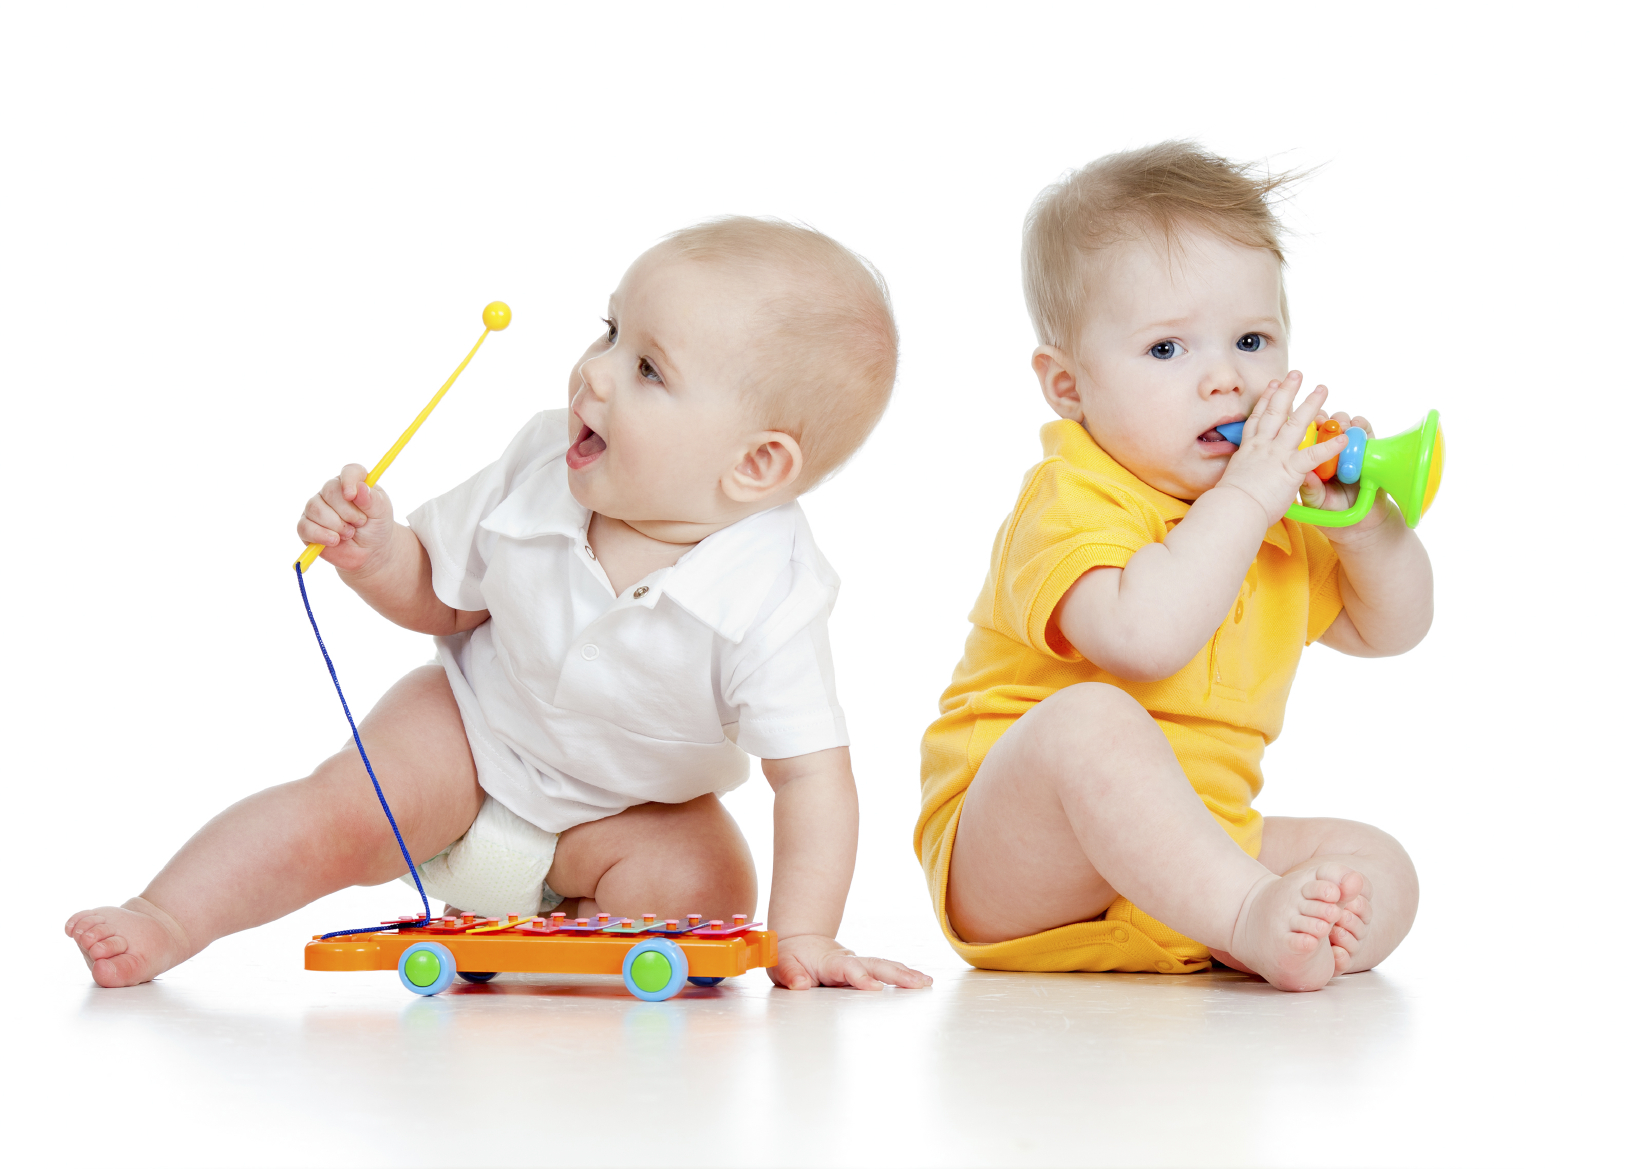 Choosing the Musical Toys for Your Baby